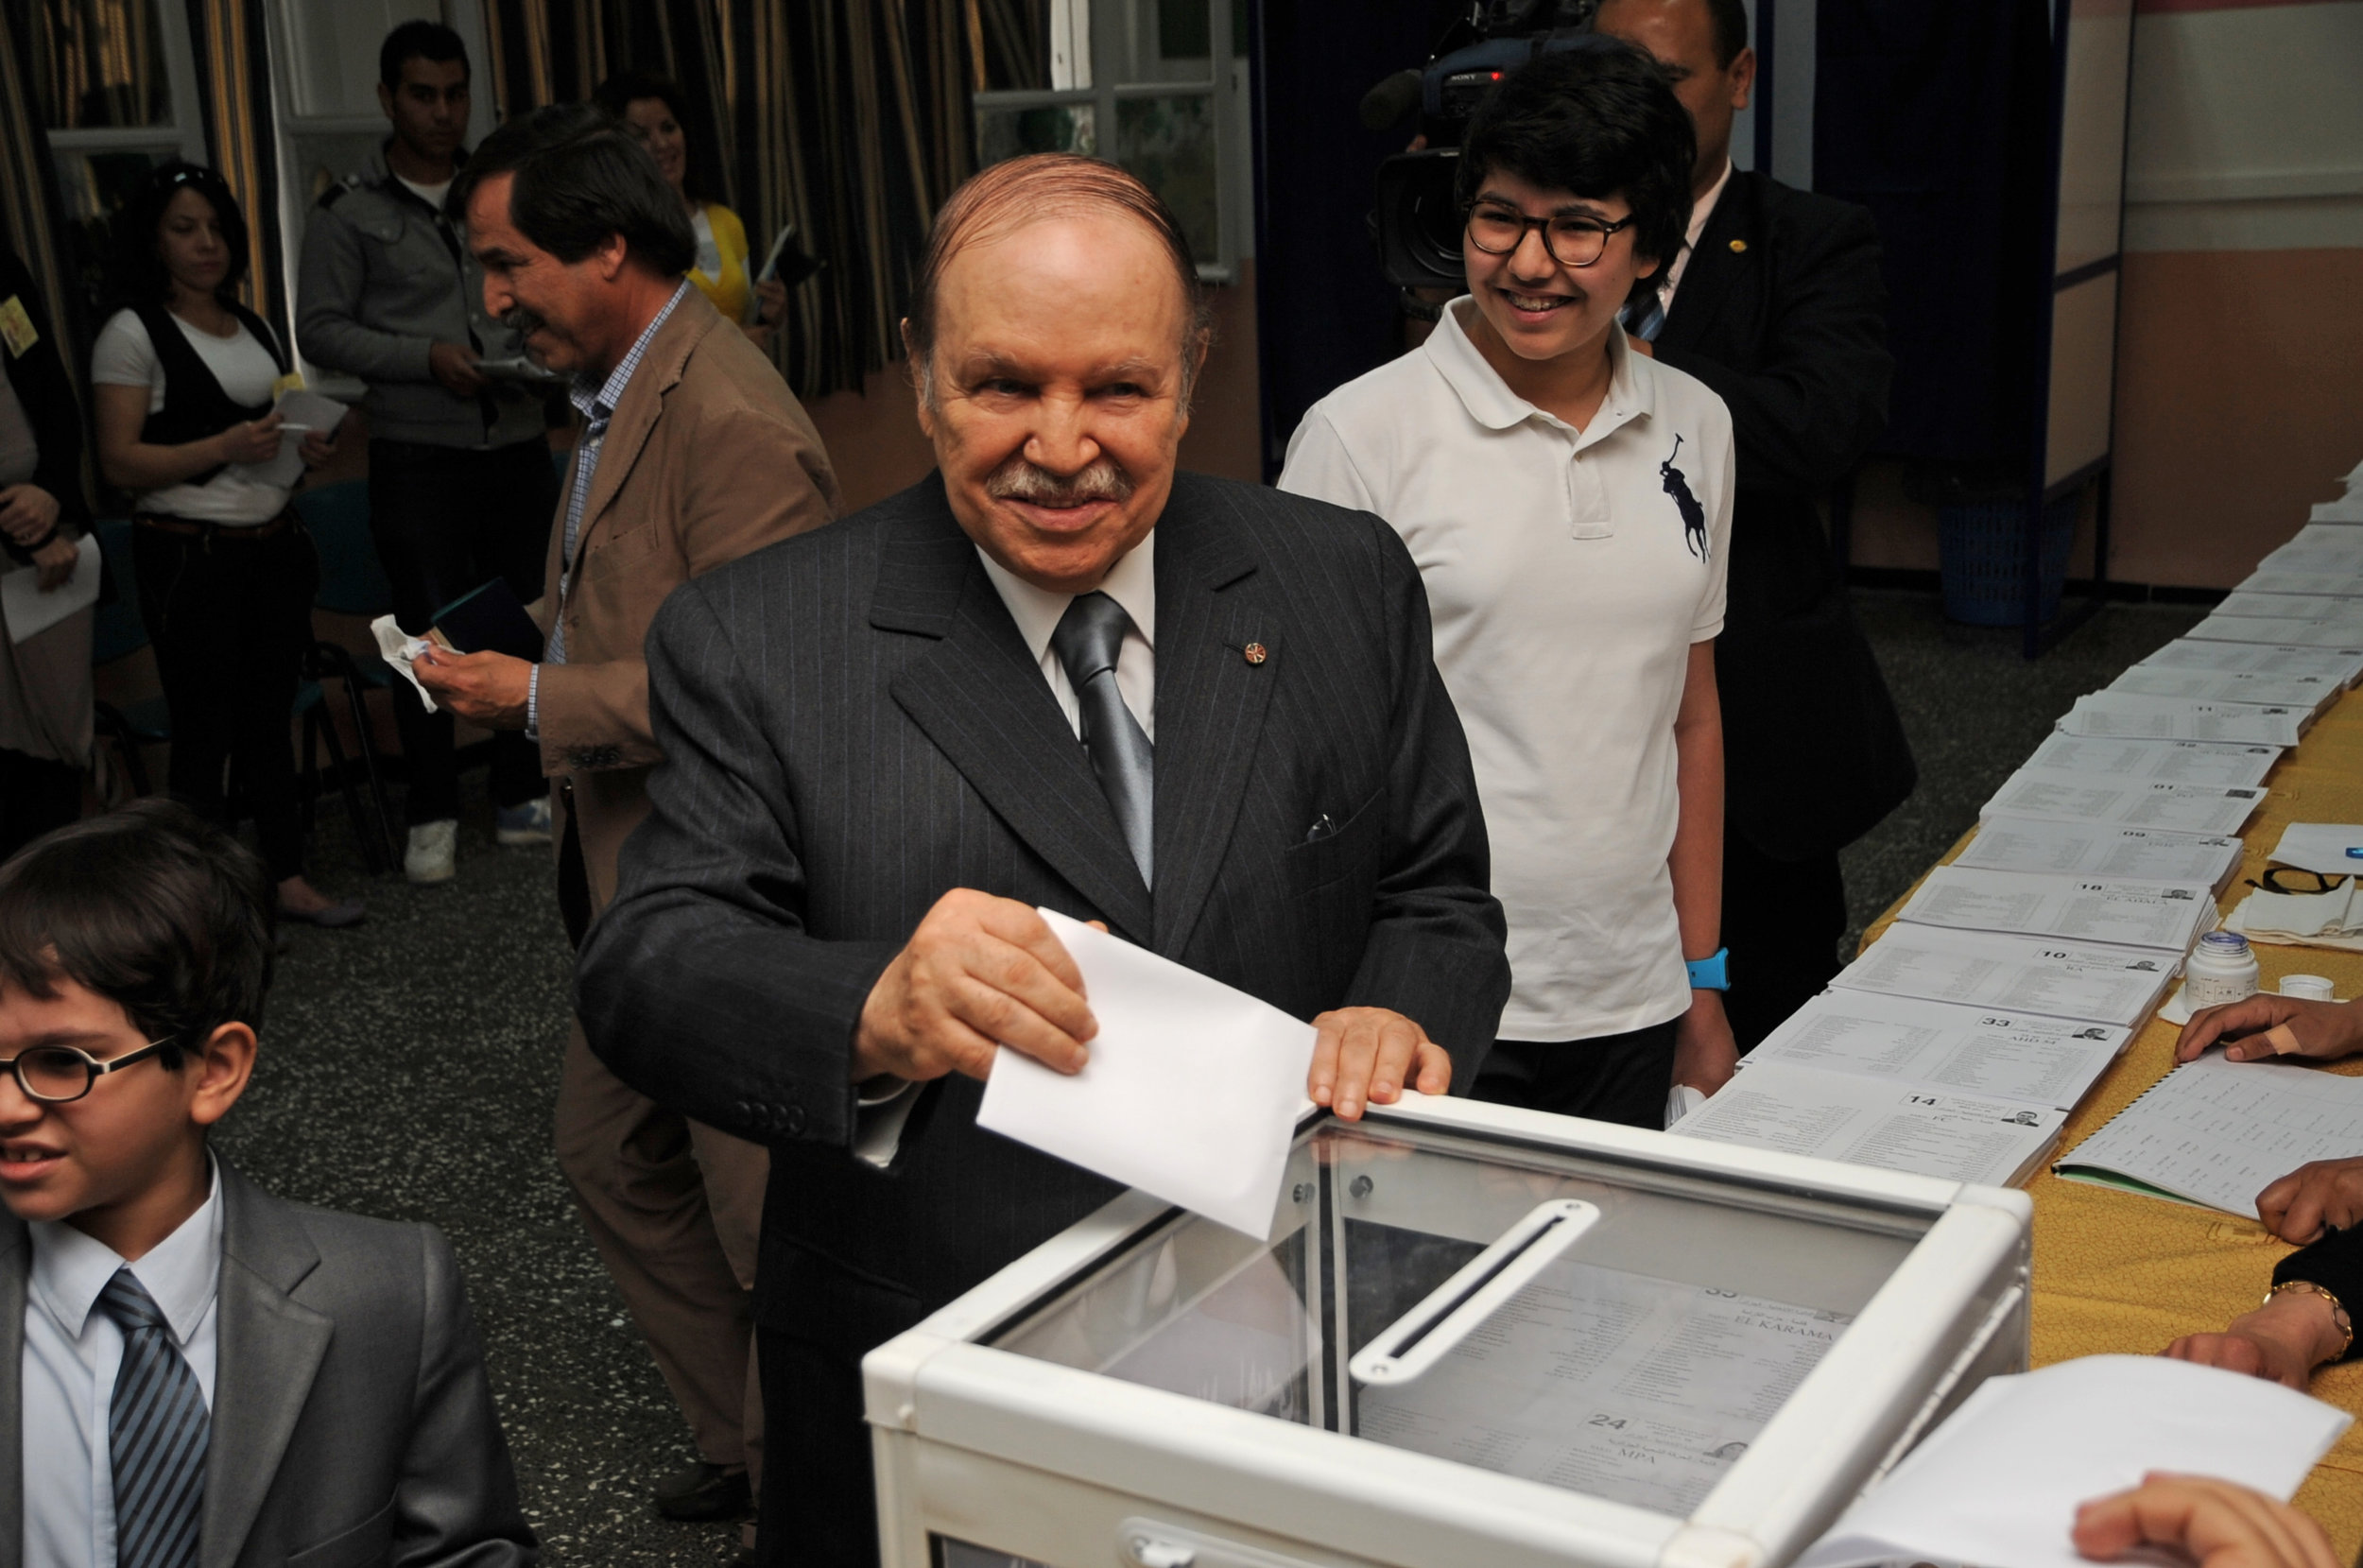 President Abdelaziz Bouteflika announced that he would not seek re-election following weeks of protests. (Wikimedia Commons)